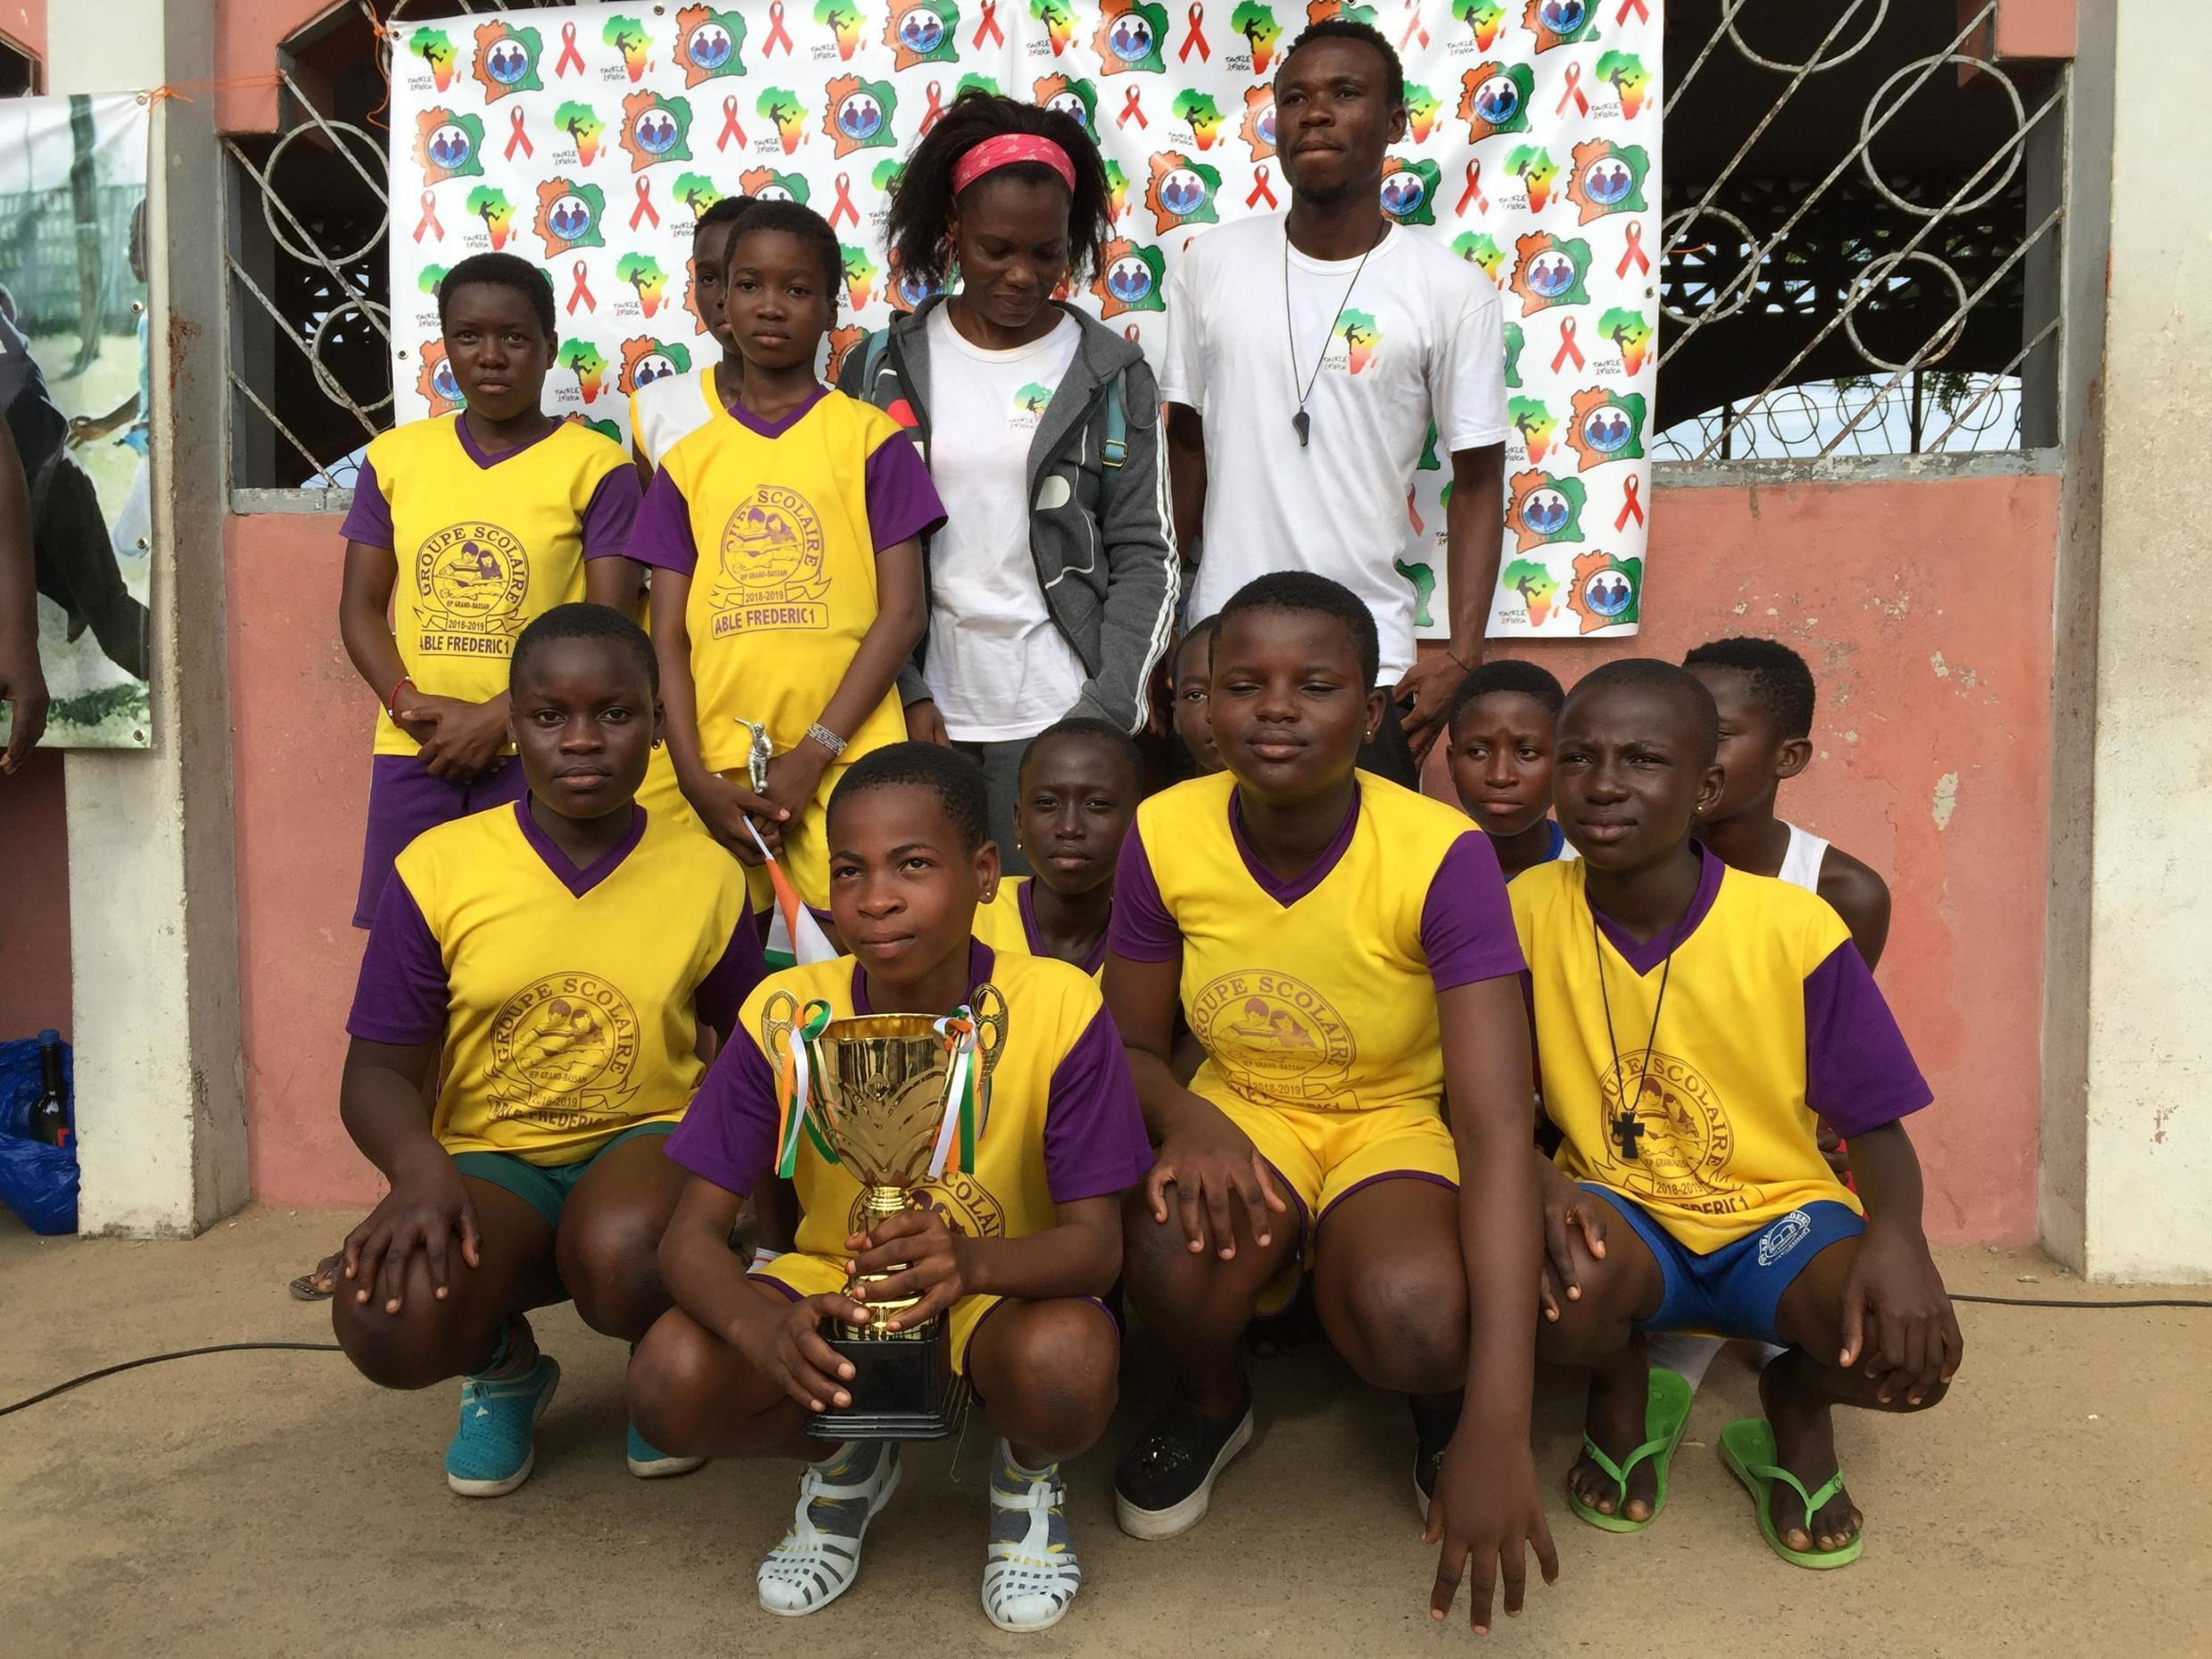 One of the winning teams of youth football in Côte d'Ivoire